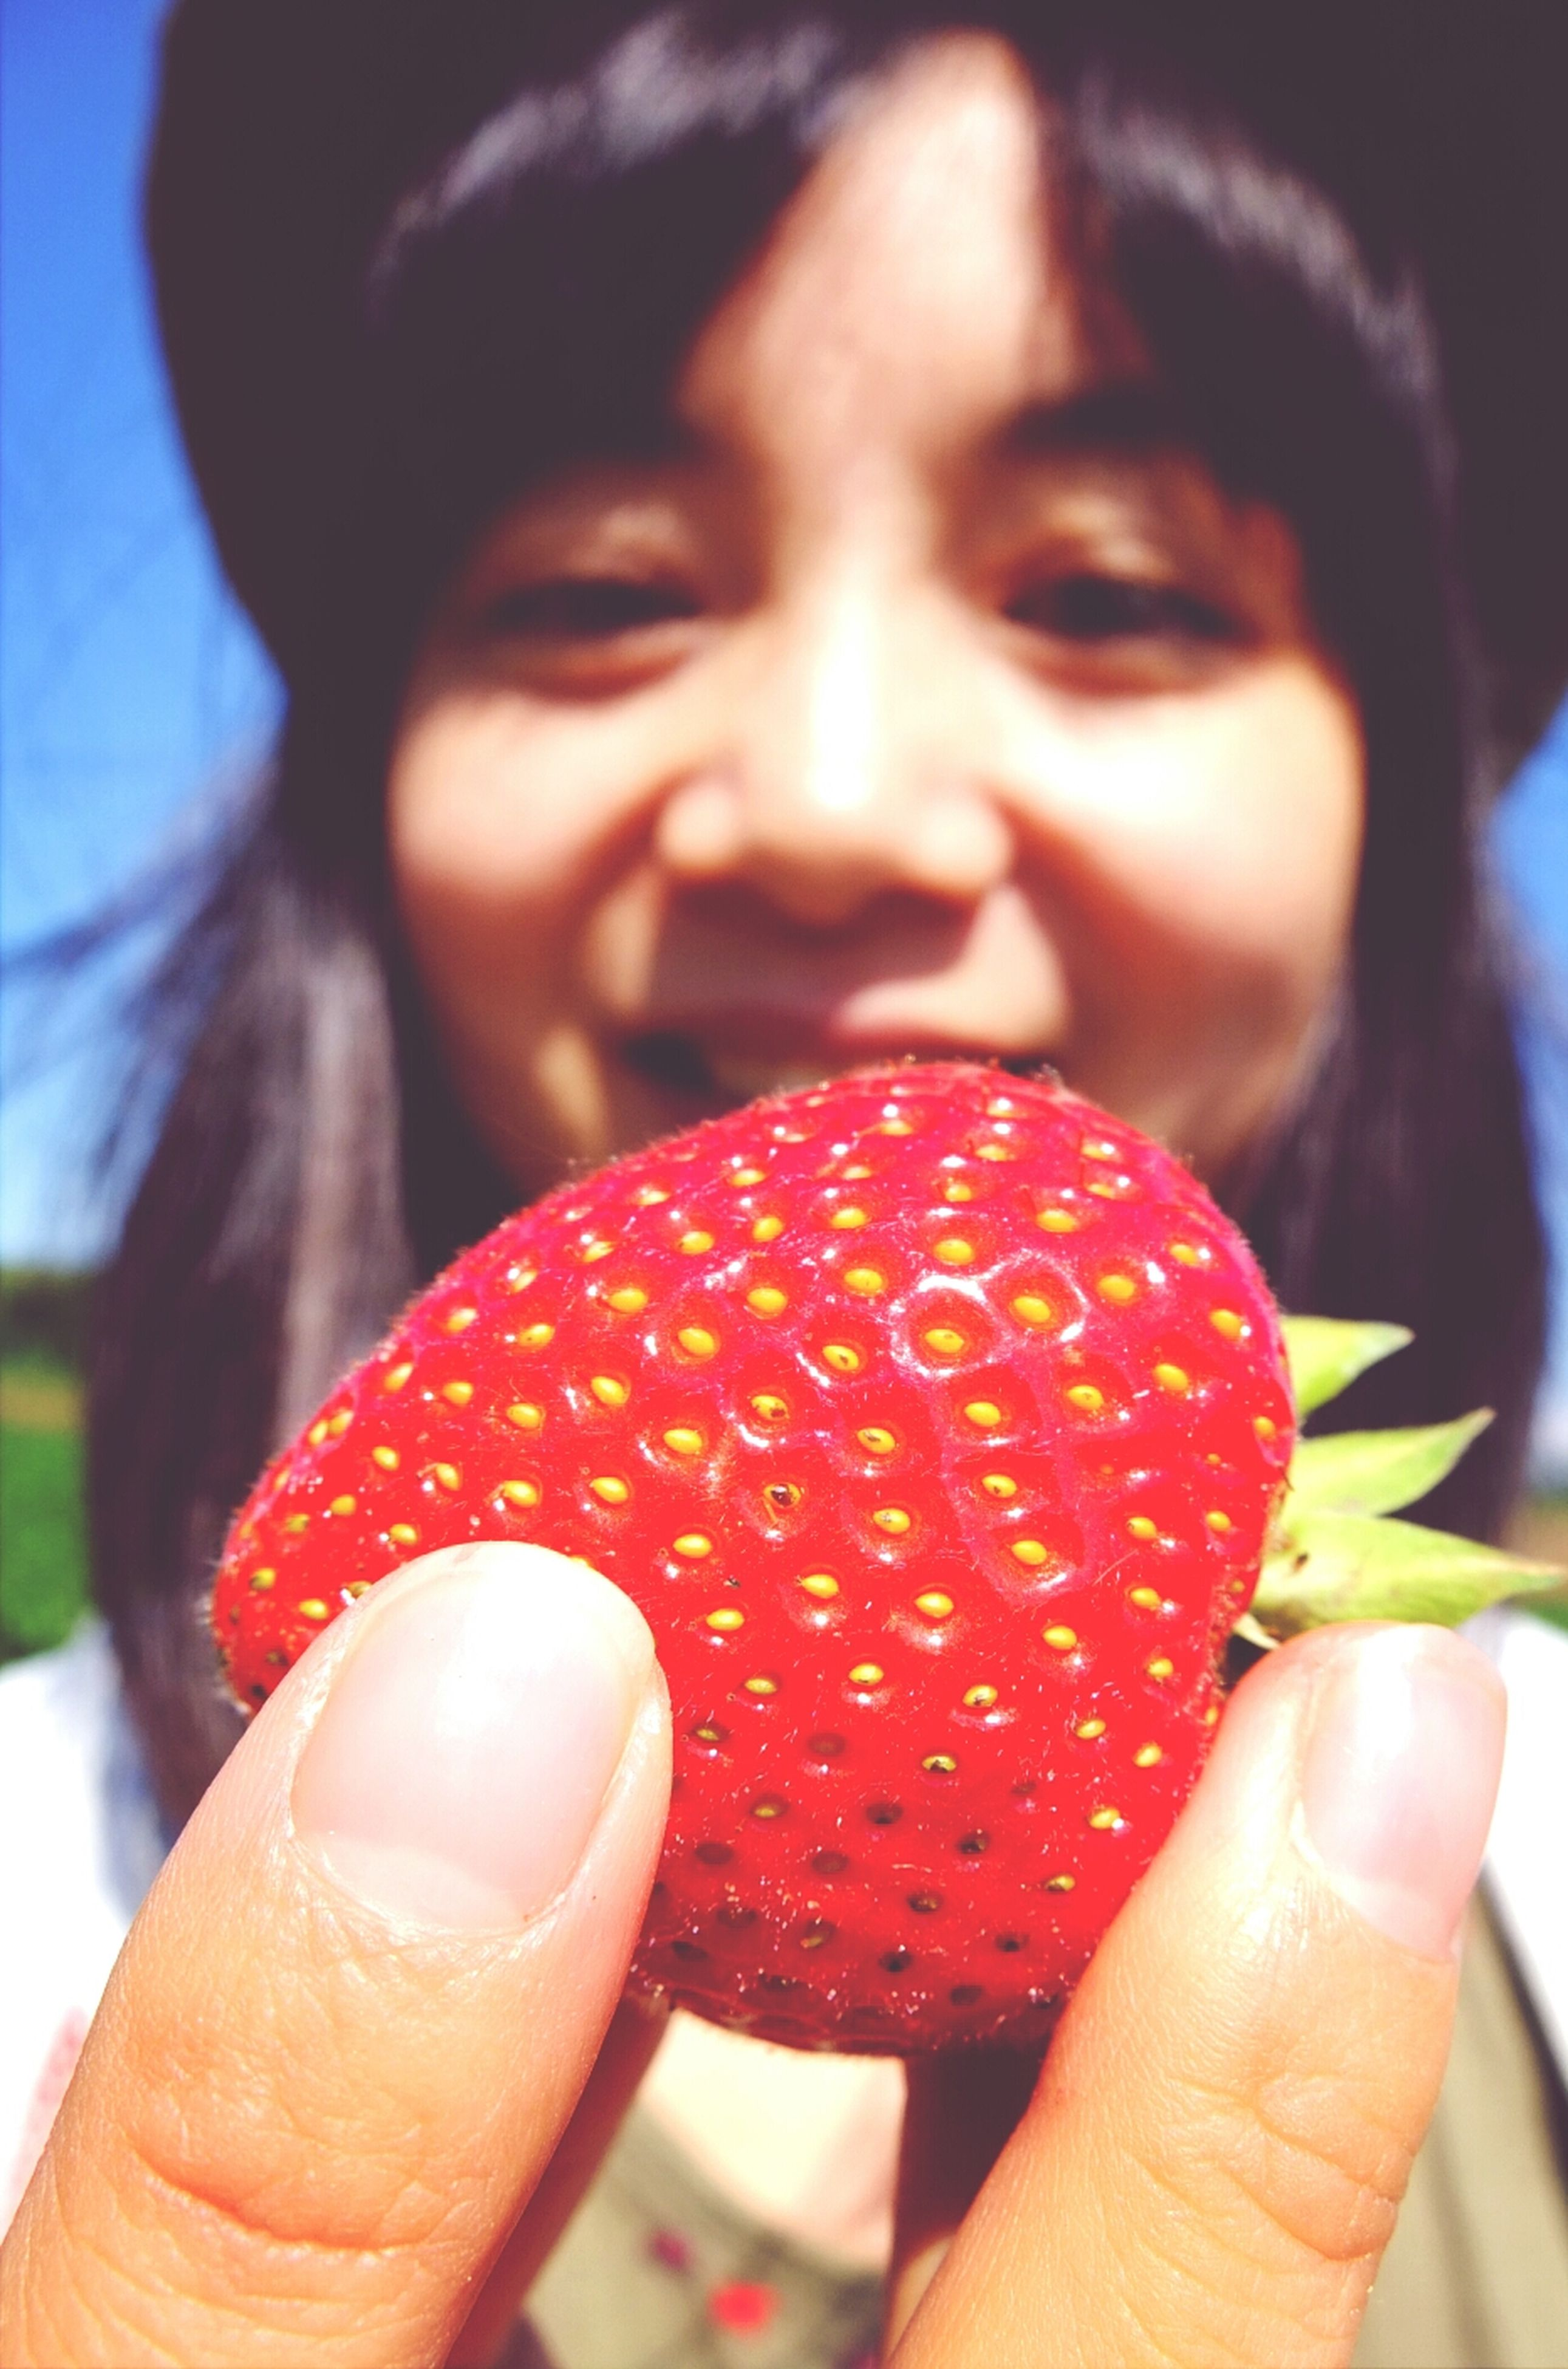 food and drink, food, holding, freshness, person, fruit, focus on foreground, sweet food, healthy eating, close-up, lifestyles, frozen food, strawberry, ice cream, indulgence, red, leisure activity